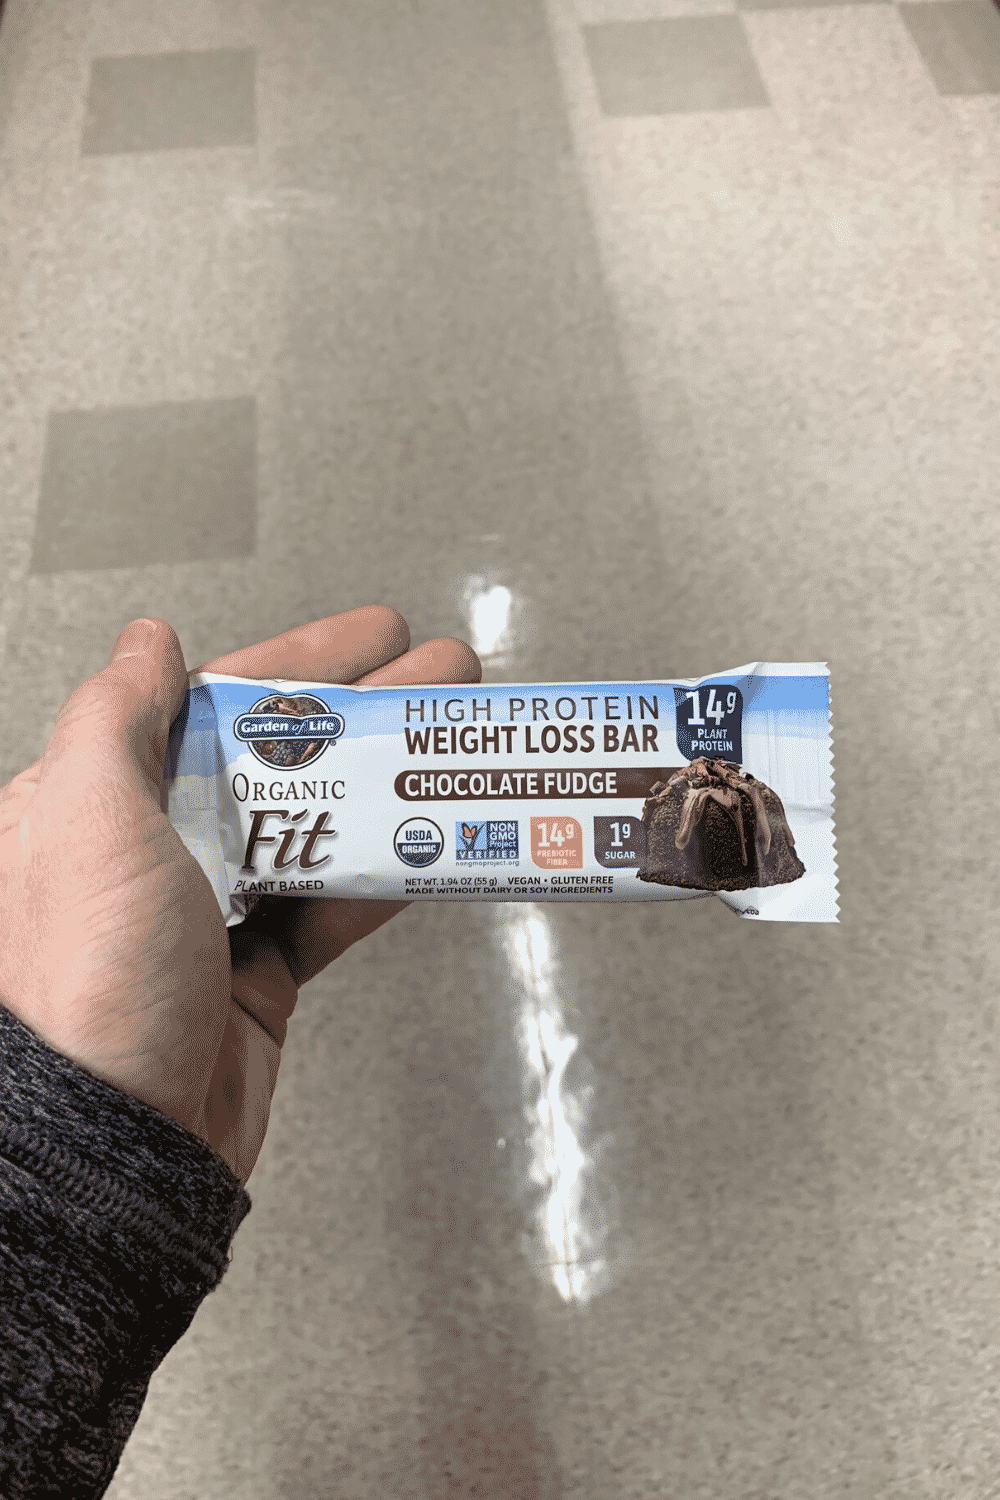 A hand holding a wrapped chocolate fudge garden of life high protein fat loss bar